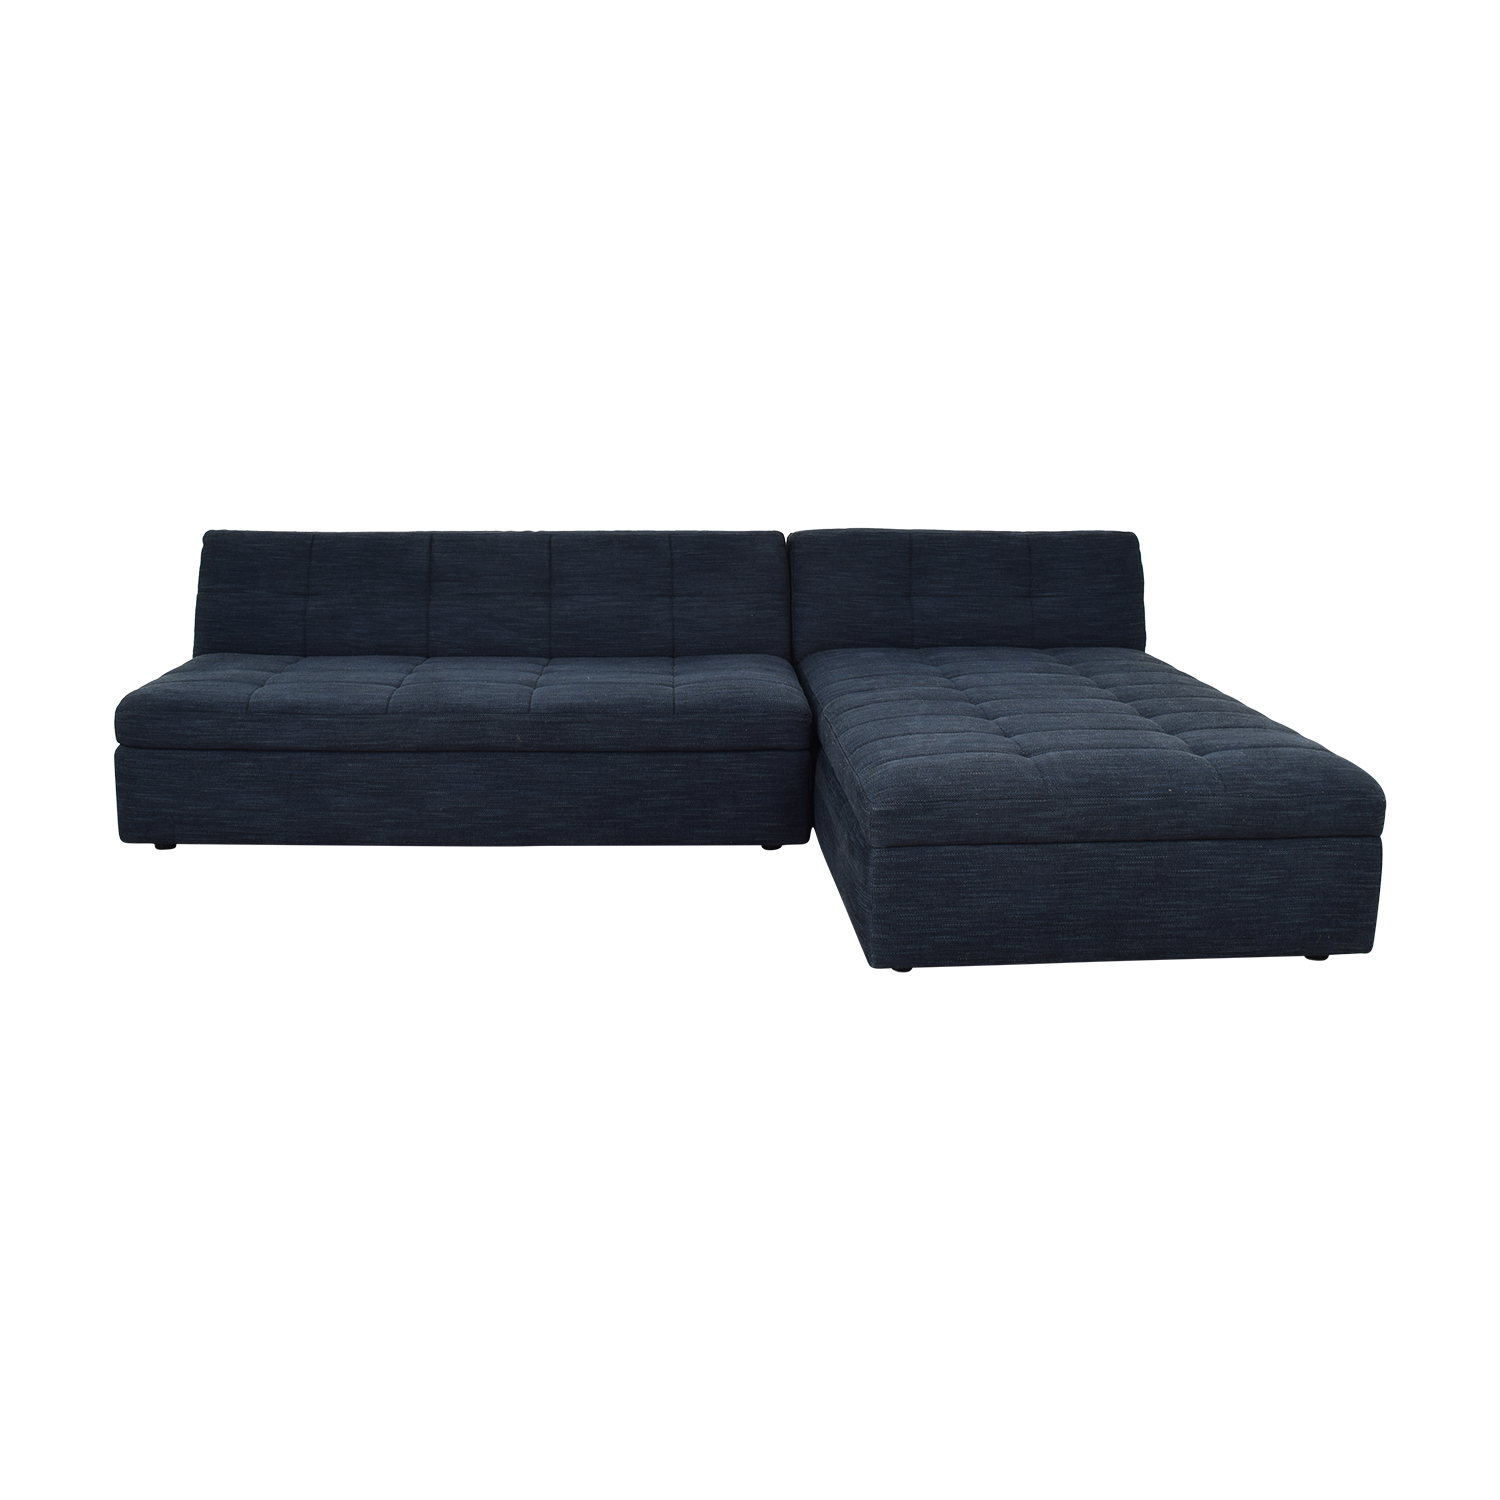 West Elm West Elm Plateau Armless Sofa with Storage Chaise for sale